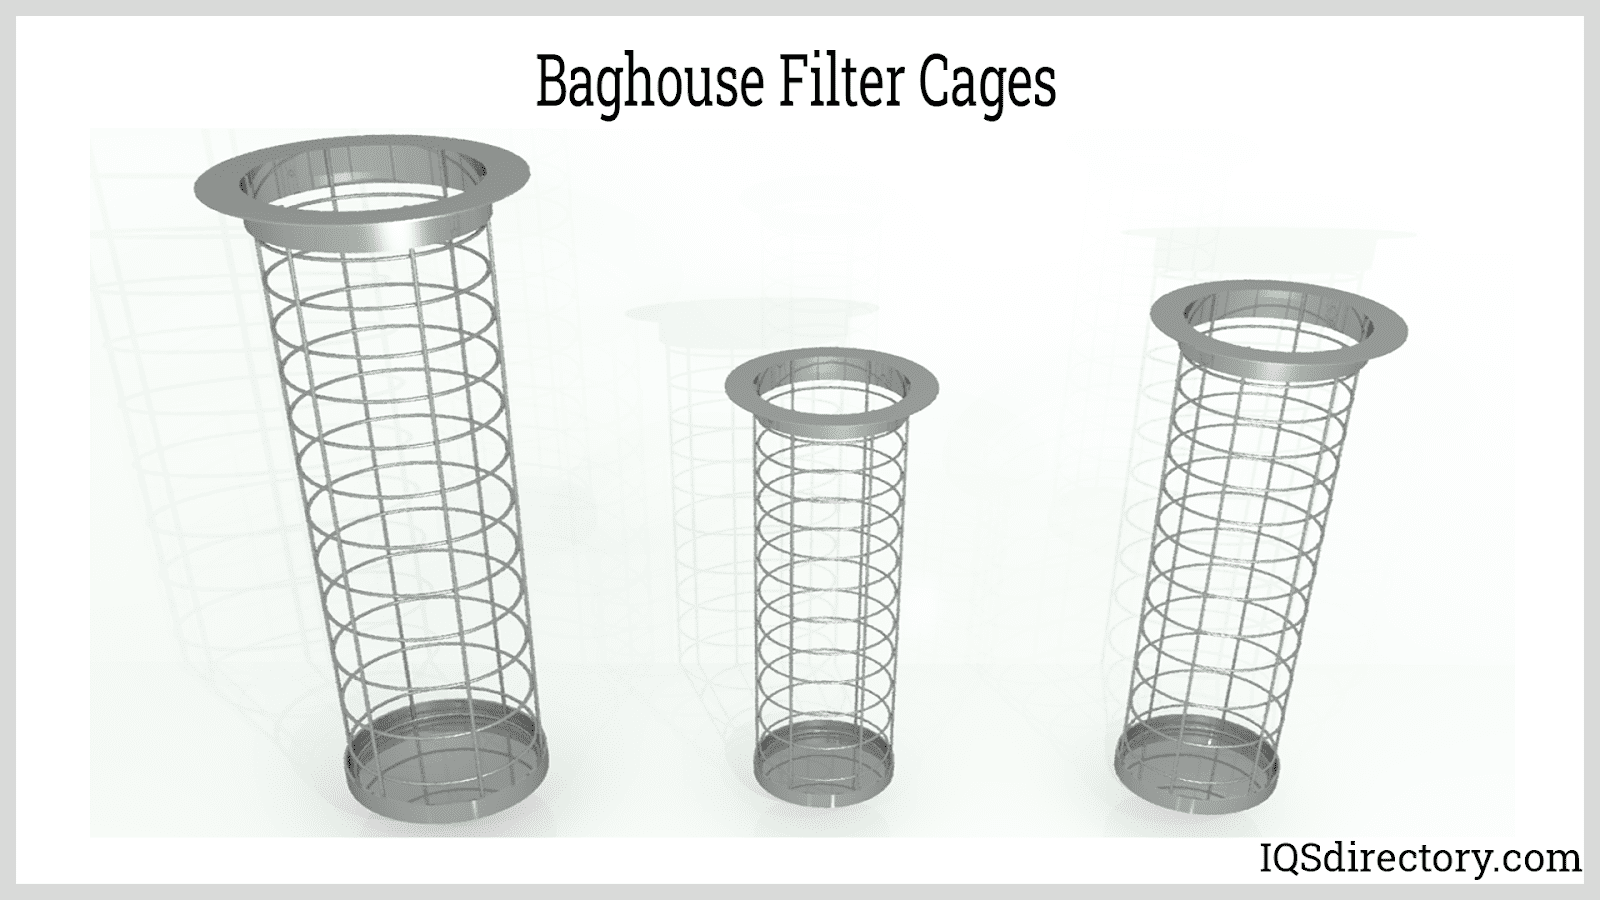 Baghouse Filter Cages